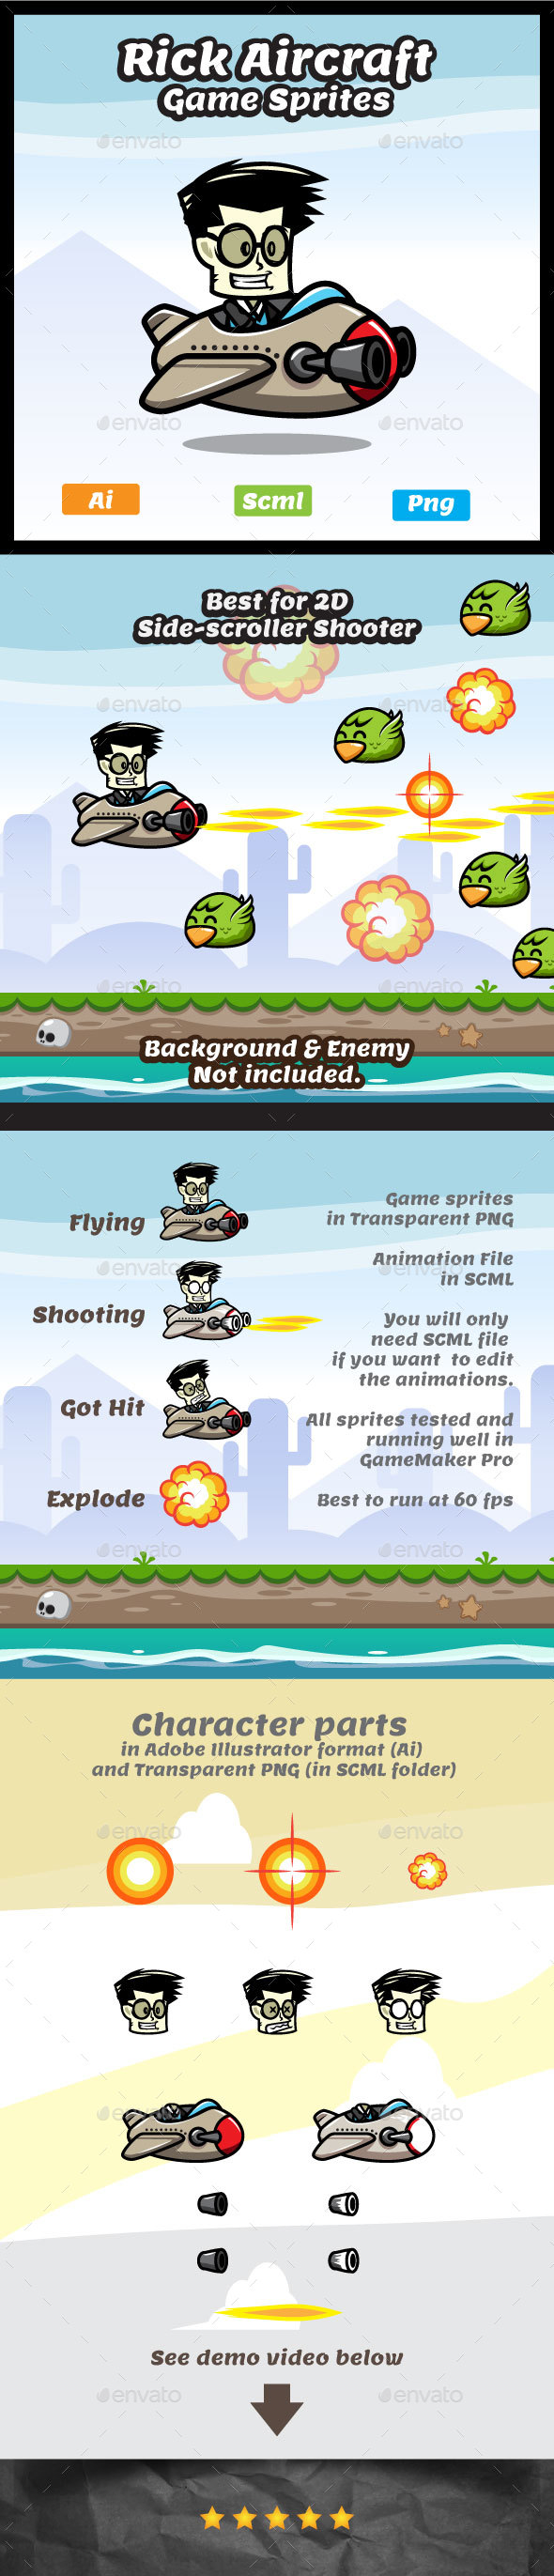 Rick Aircraft 2D Game Character Sprites - Sprites Game Assets